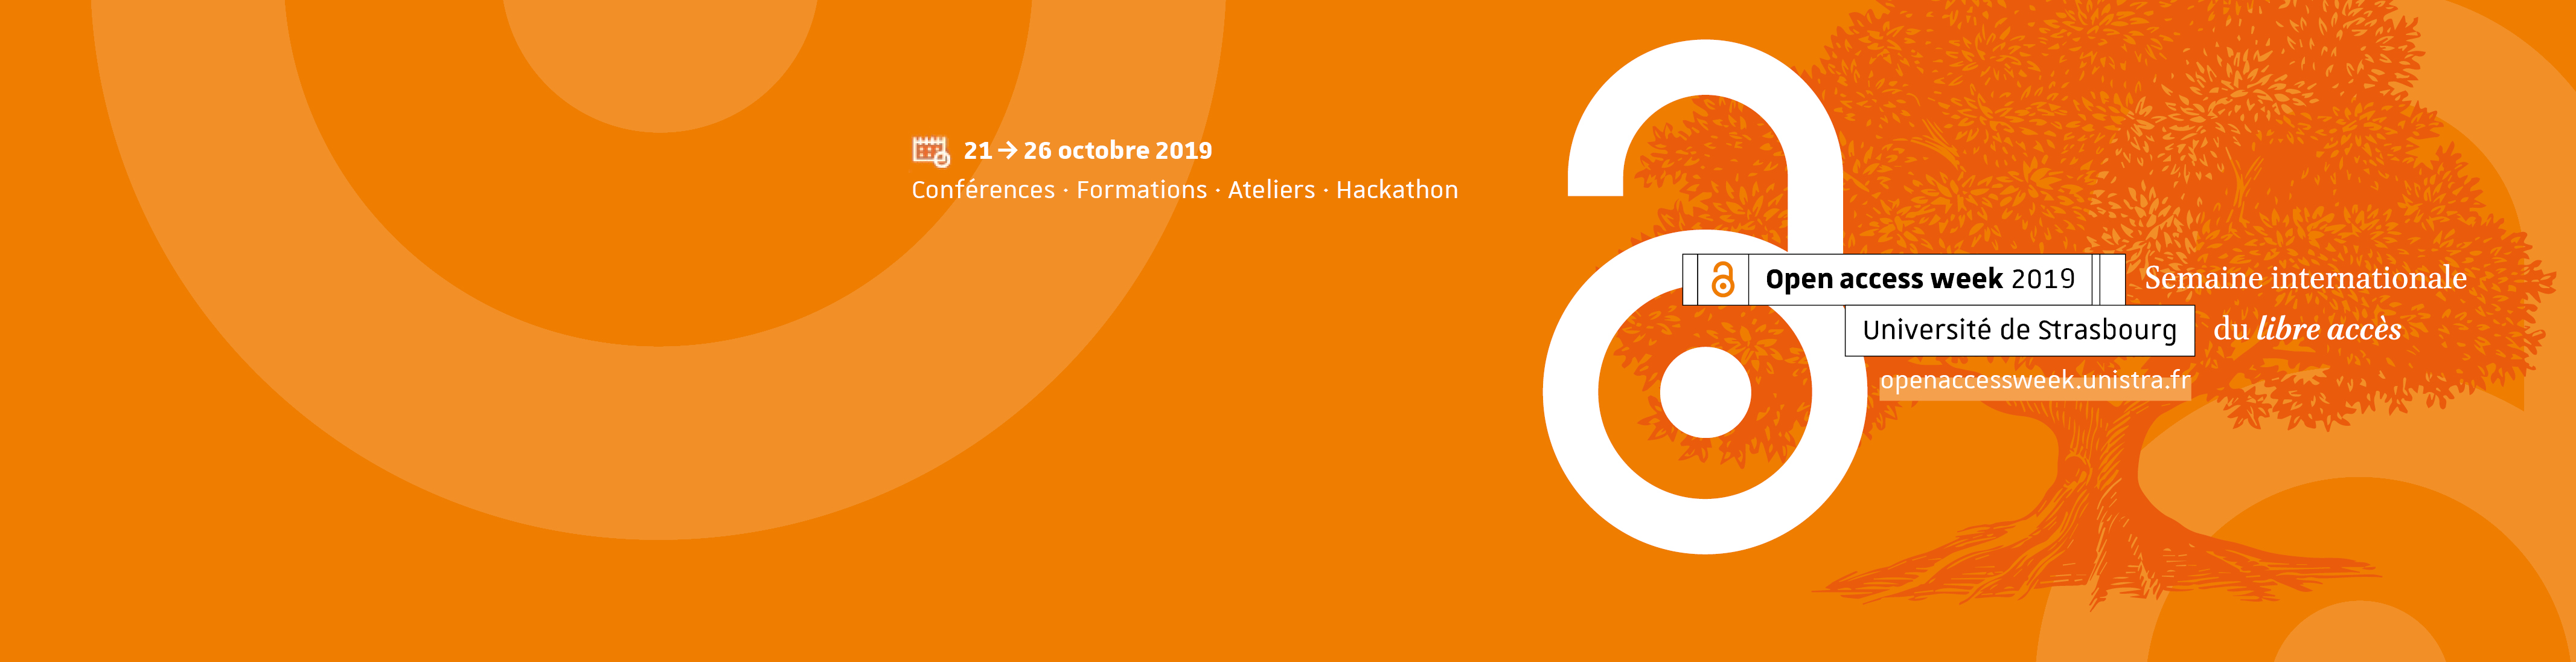 L'Open access week 2019 à Strasbourg – du 21 au 26 octobre 2019